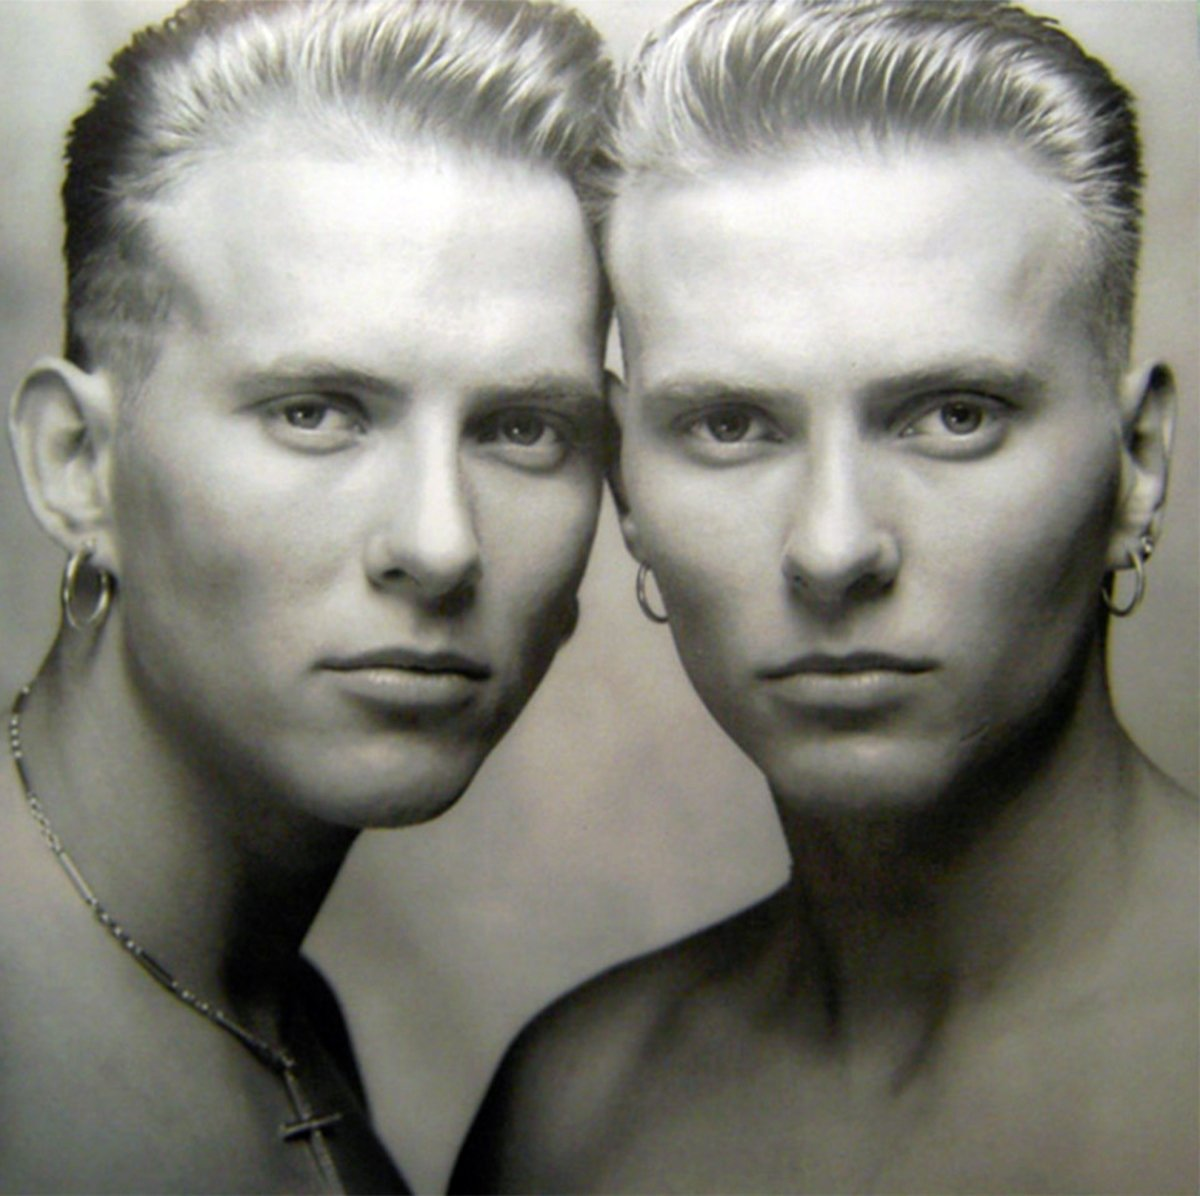 An 80s photo of the Goss twins